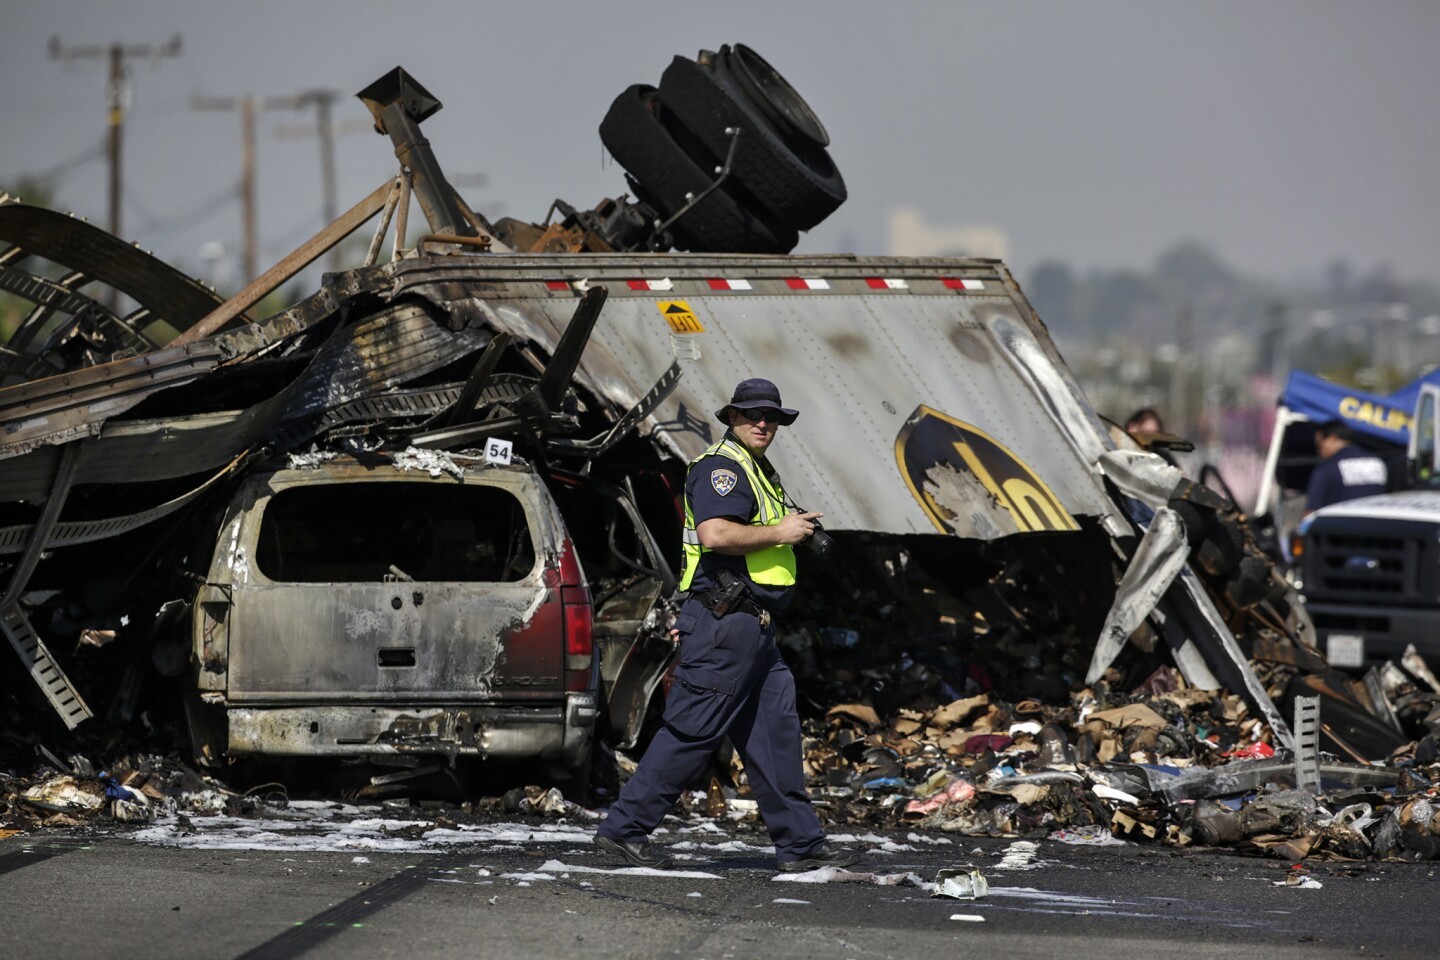 A California Highway Patrol investigator takes photographs at the scene of Saturday's multivehicle crash on the 5 Freeway in Commerce that killed three people.